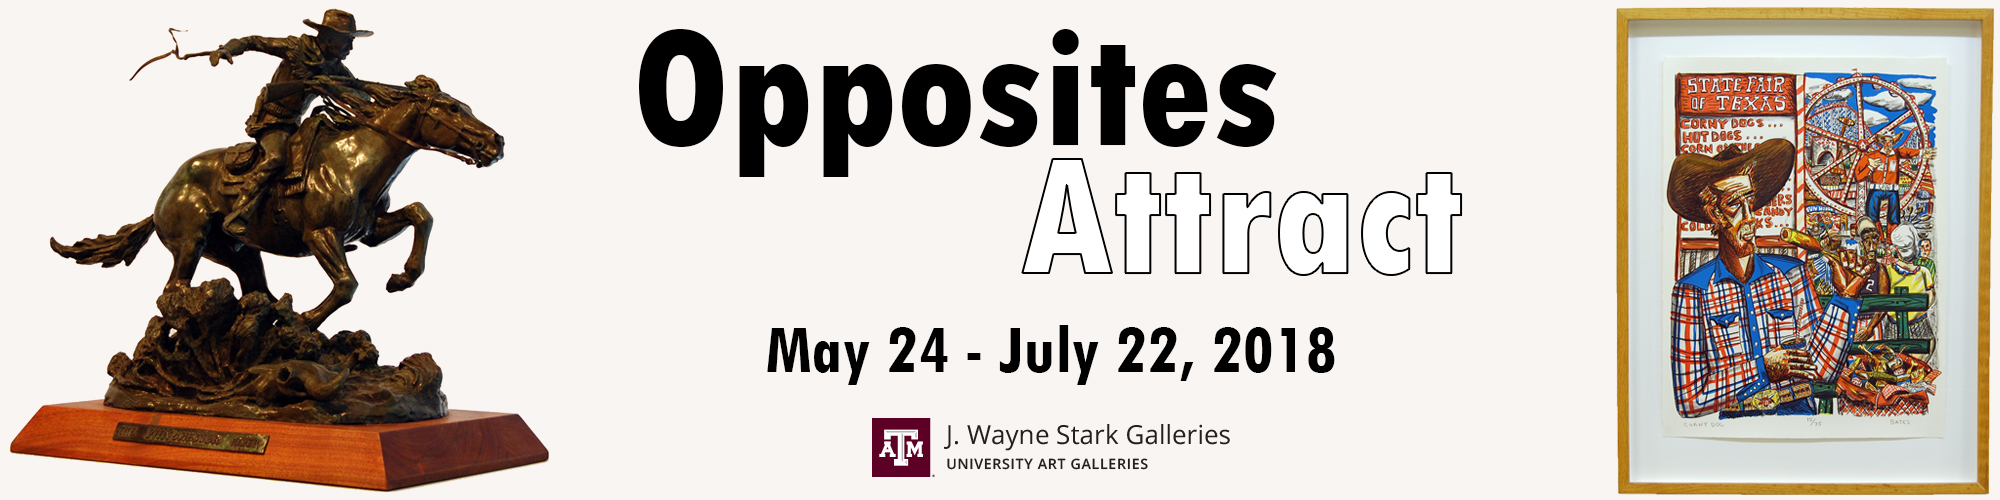 Opposites Attract Gallery Exhibition